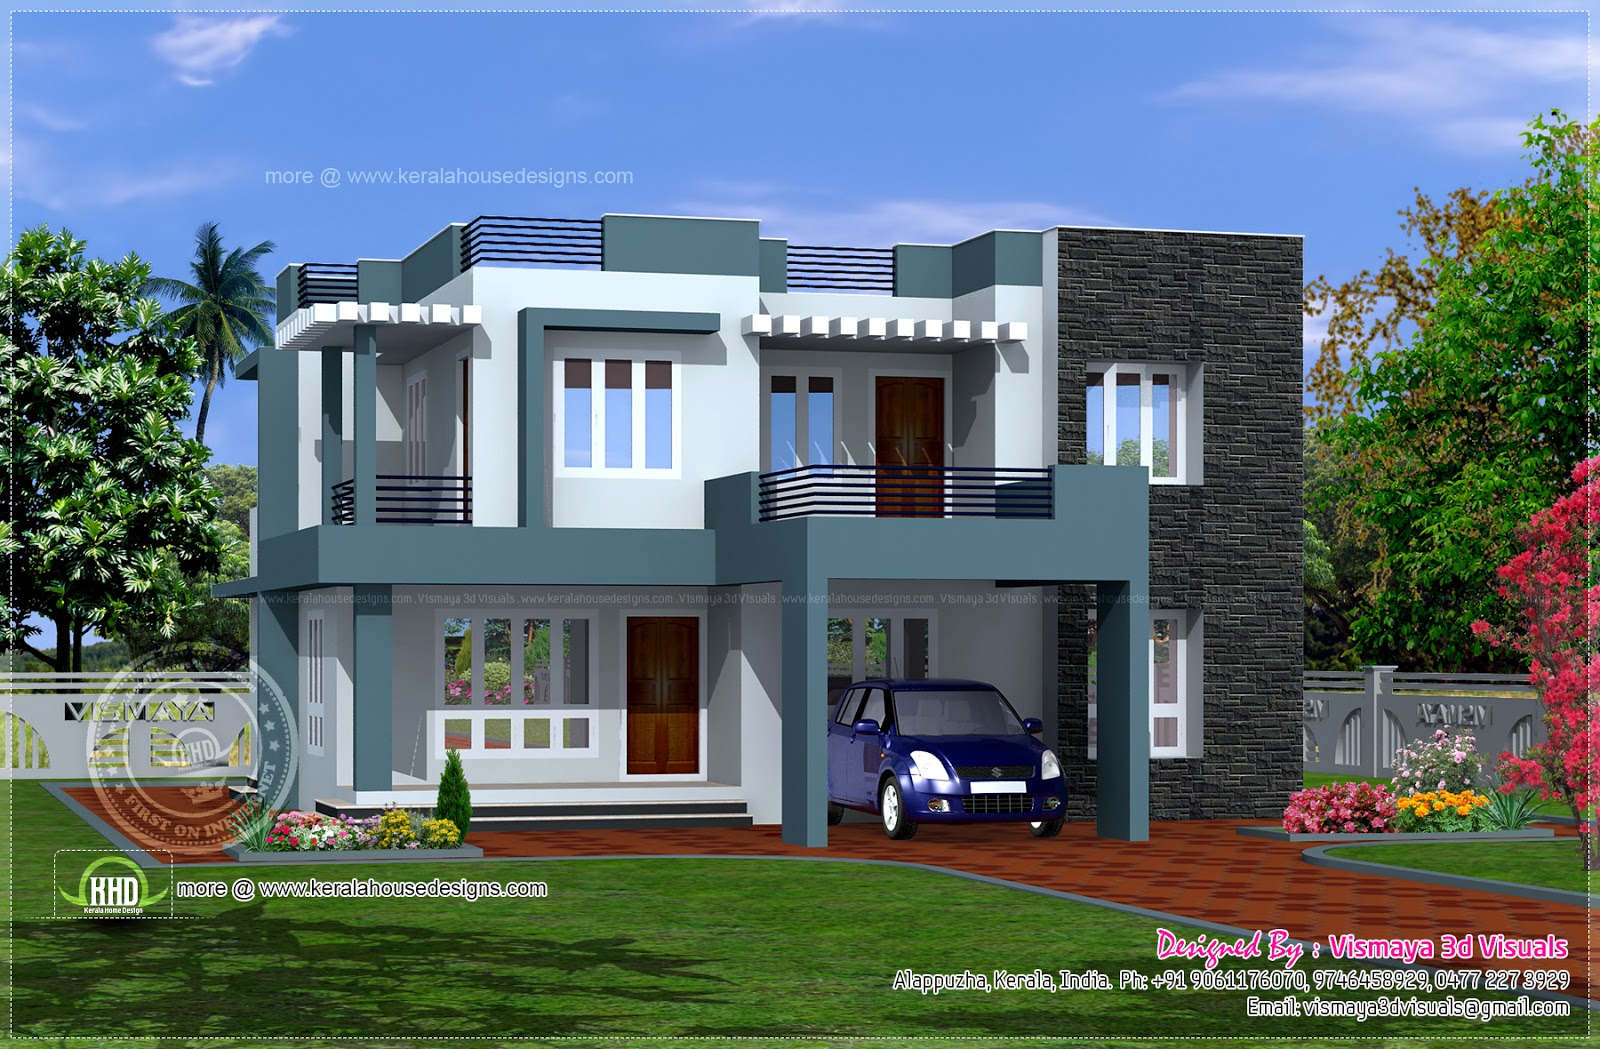 Simple contemporary style villa plan home kerala plans Simple home designs photos